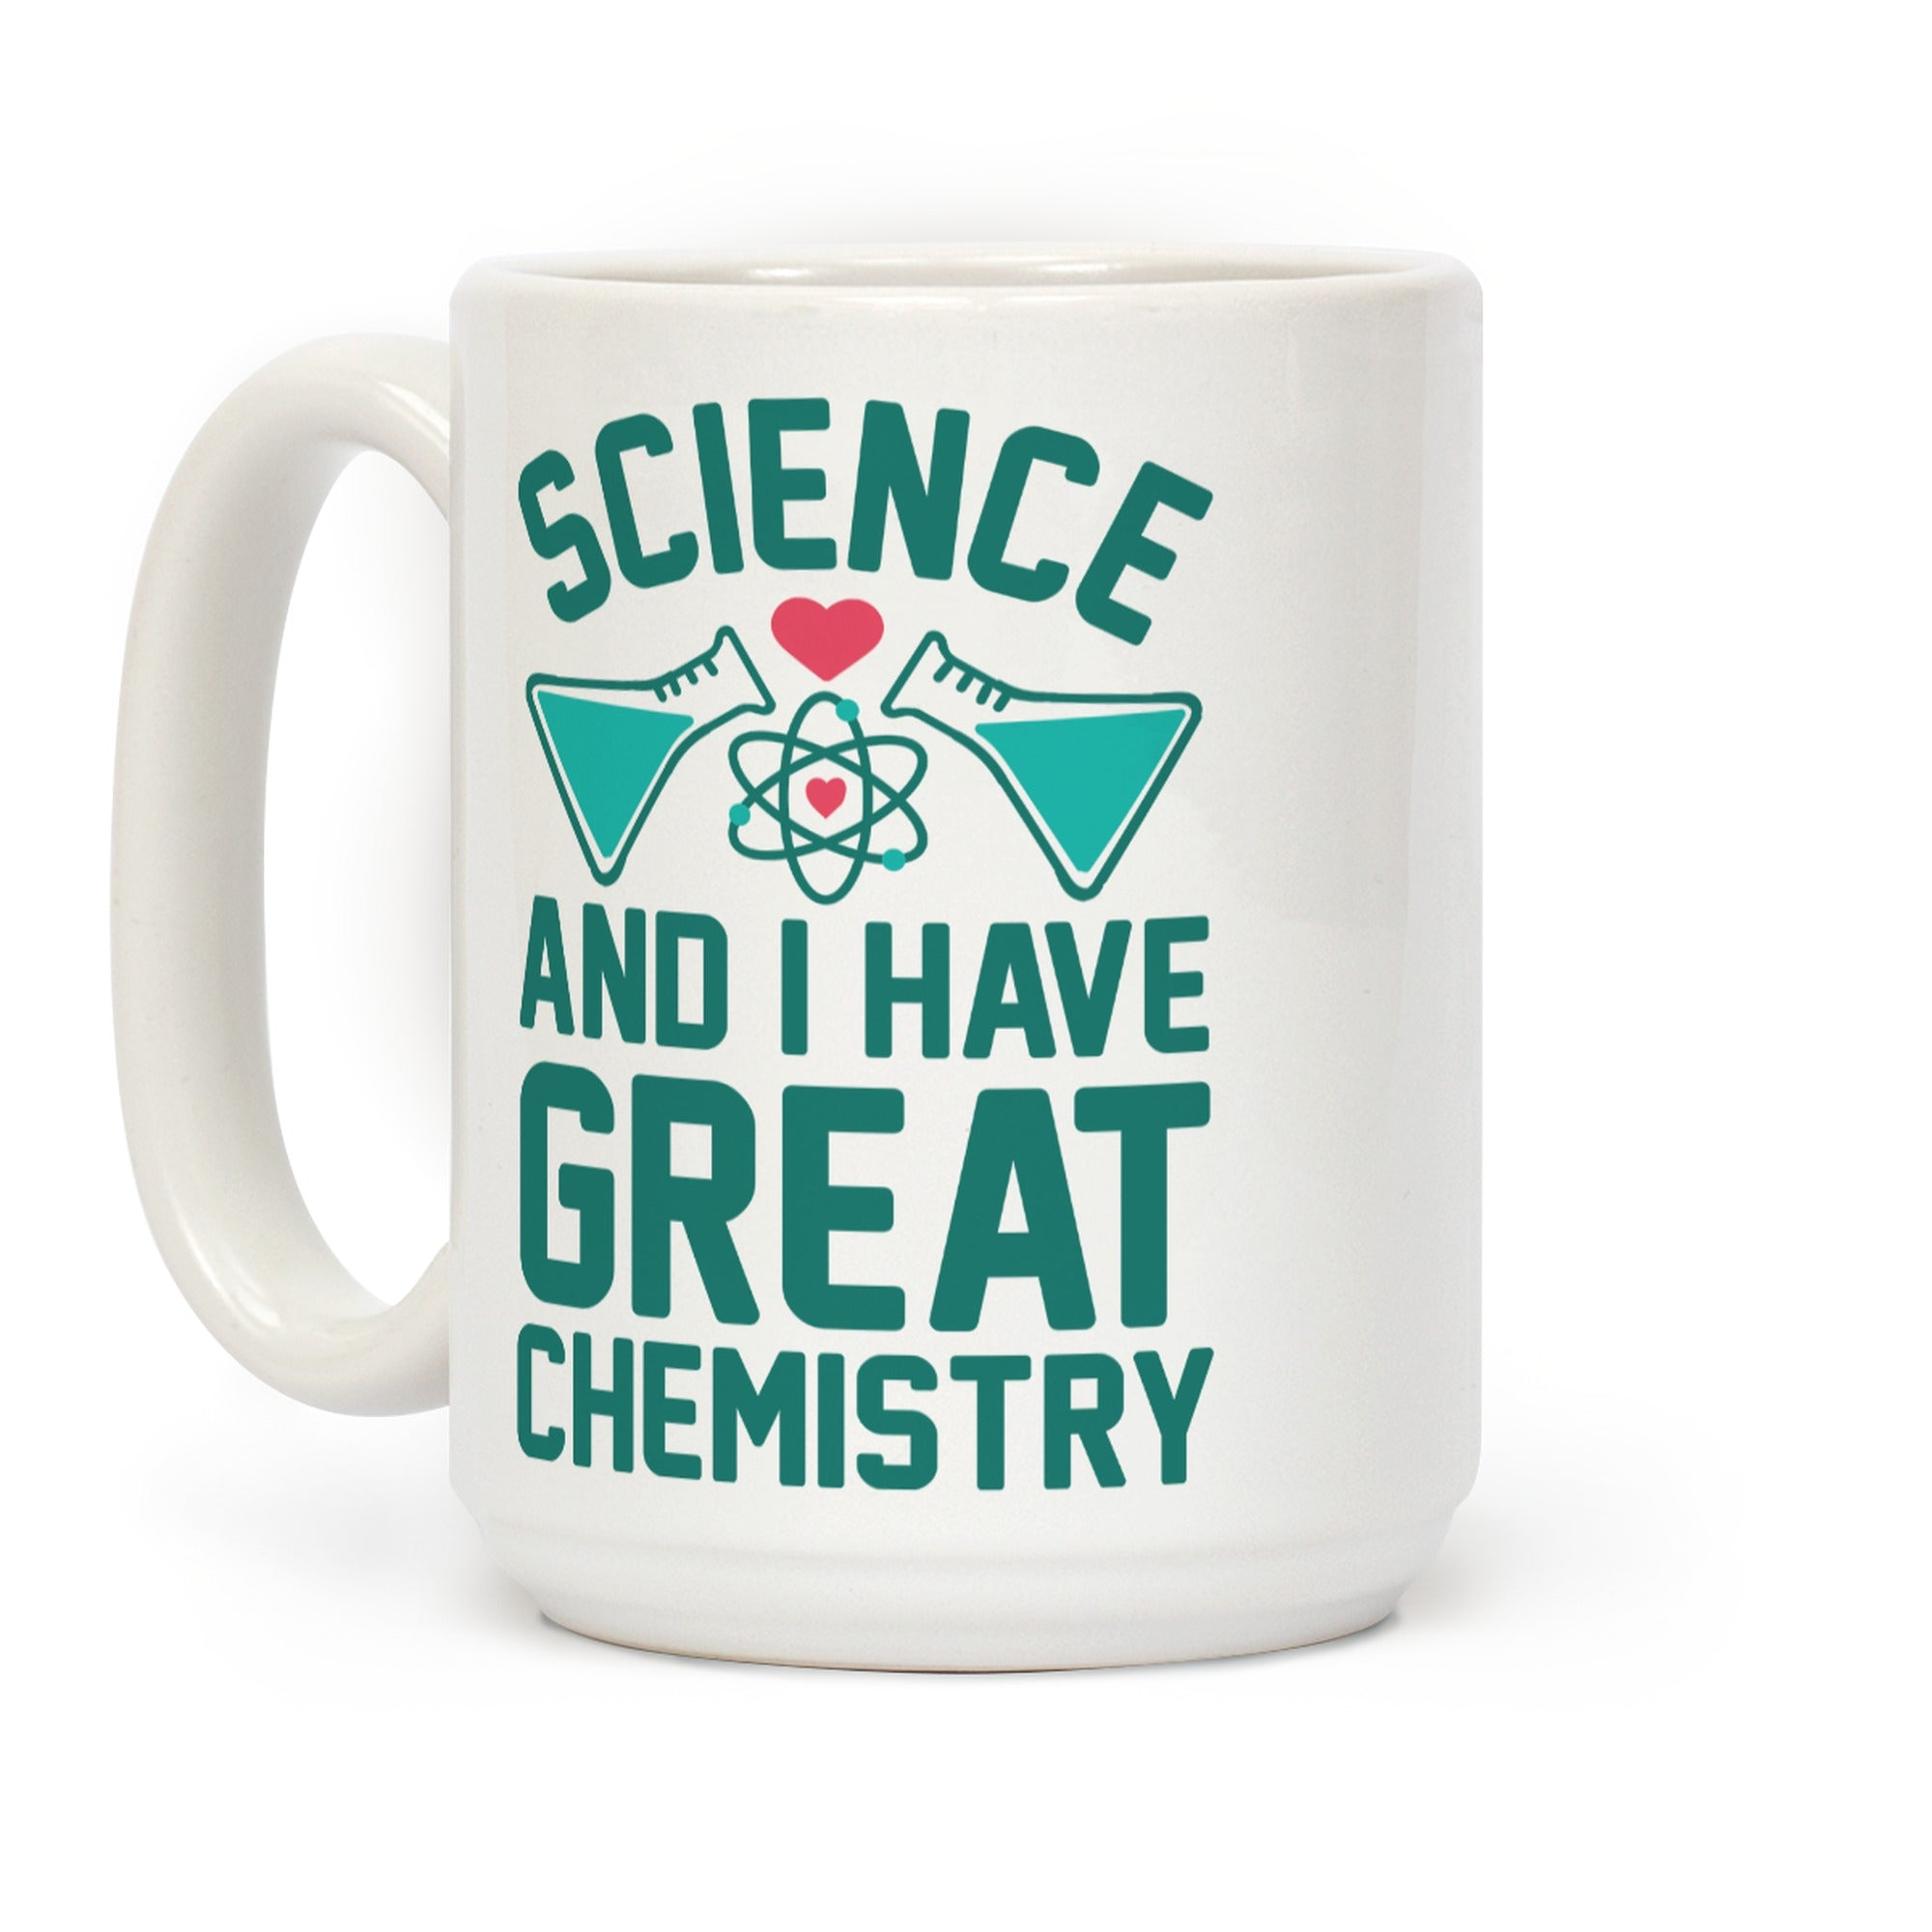 Science And I Have Great Chemistry Ceramic Coffee Mug by LookHUMAN